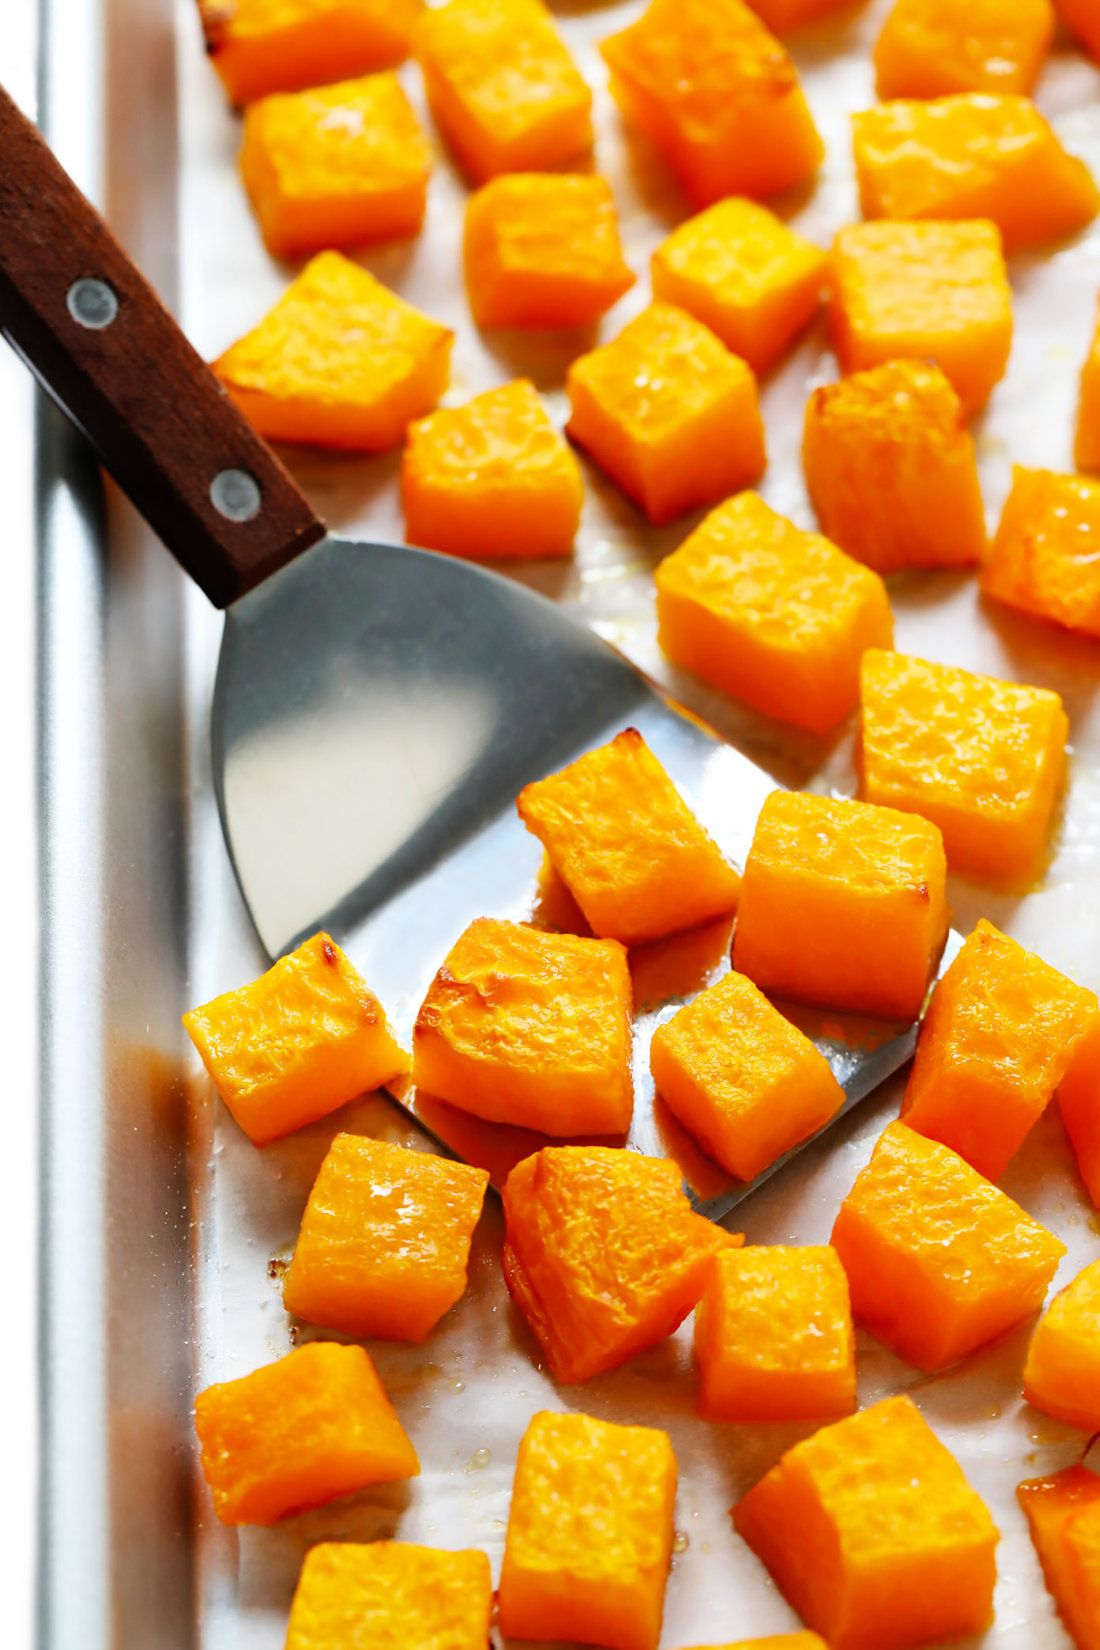 Roasted Butternut Squash (Cubes or Halves) Recipe